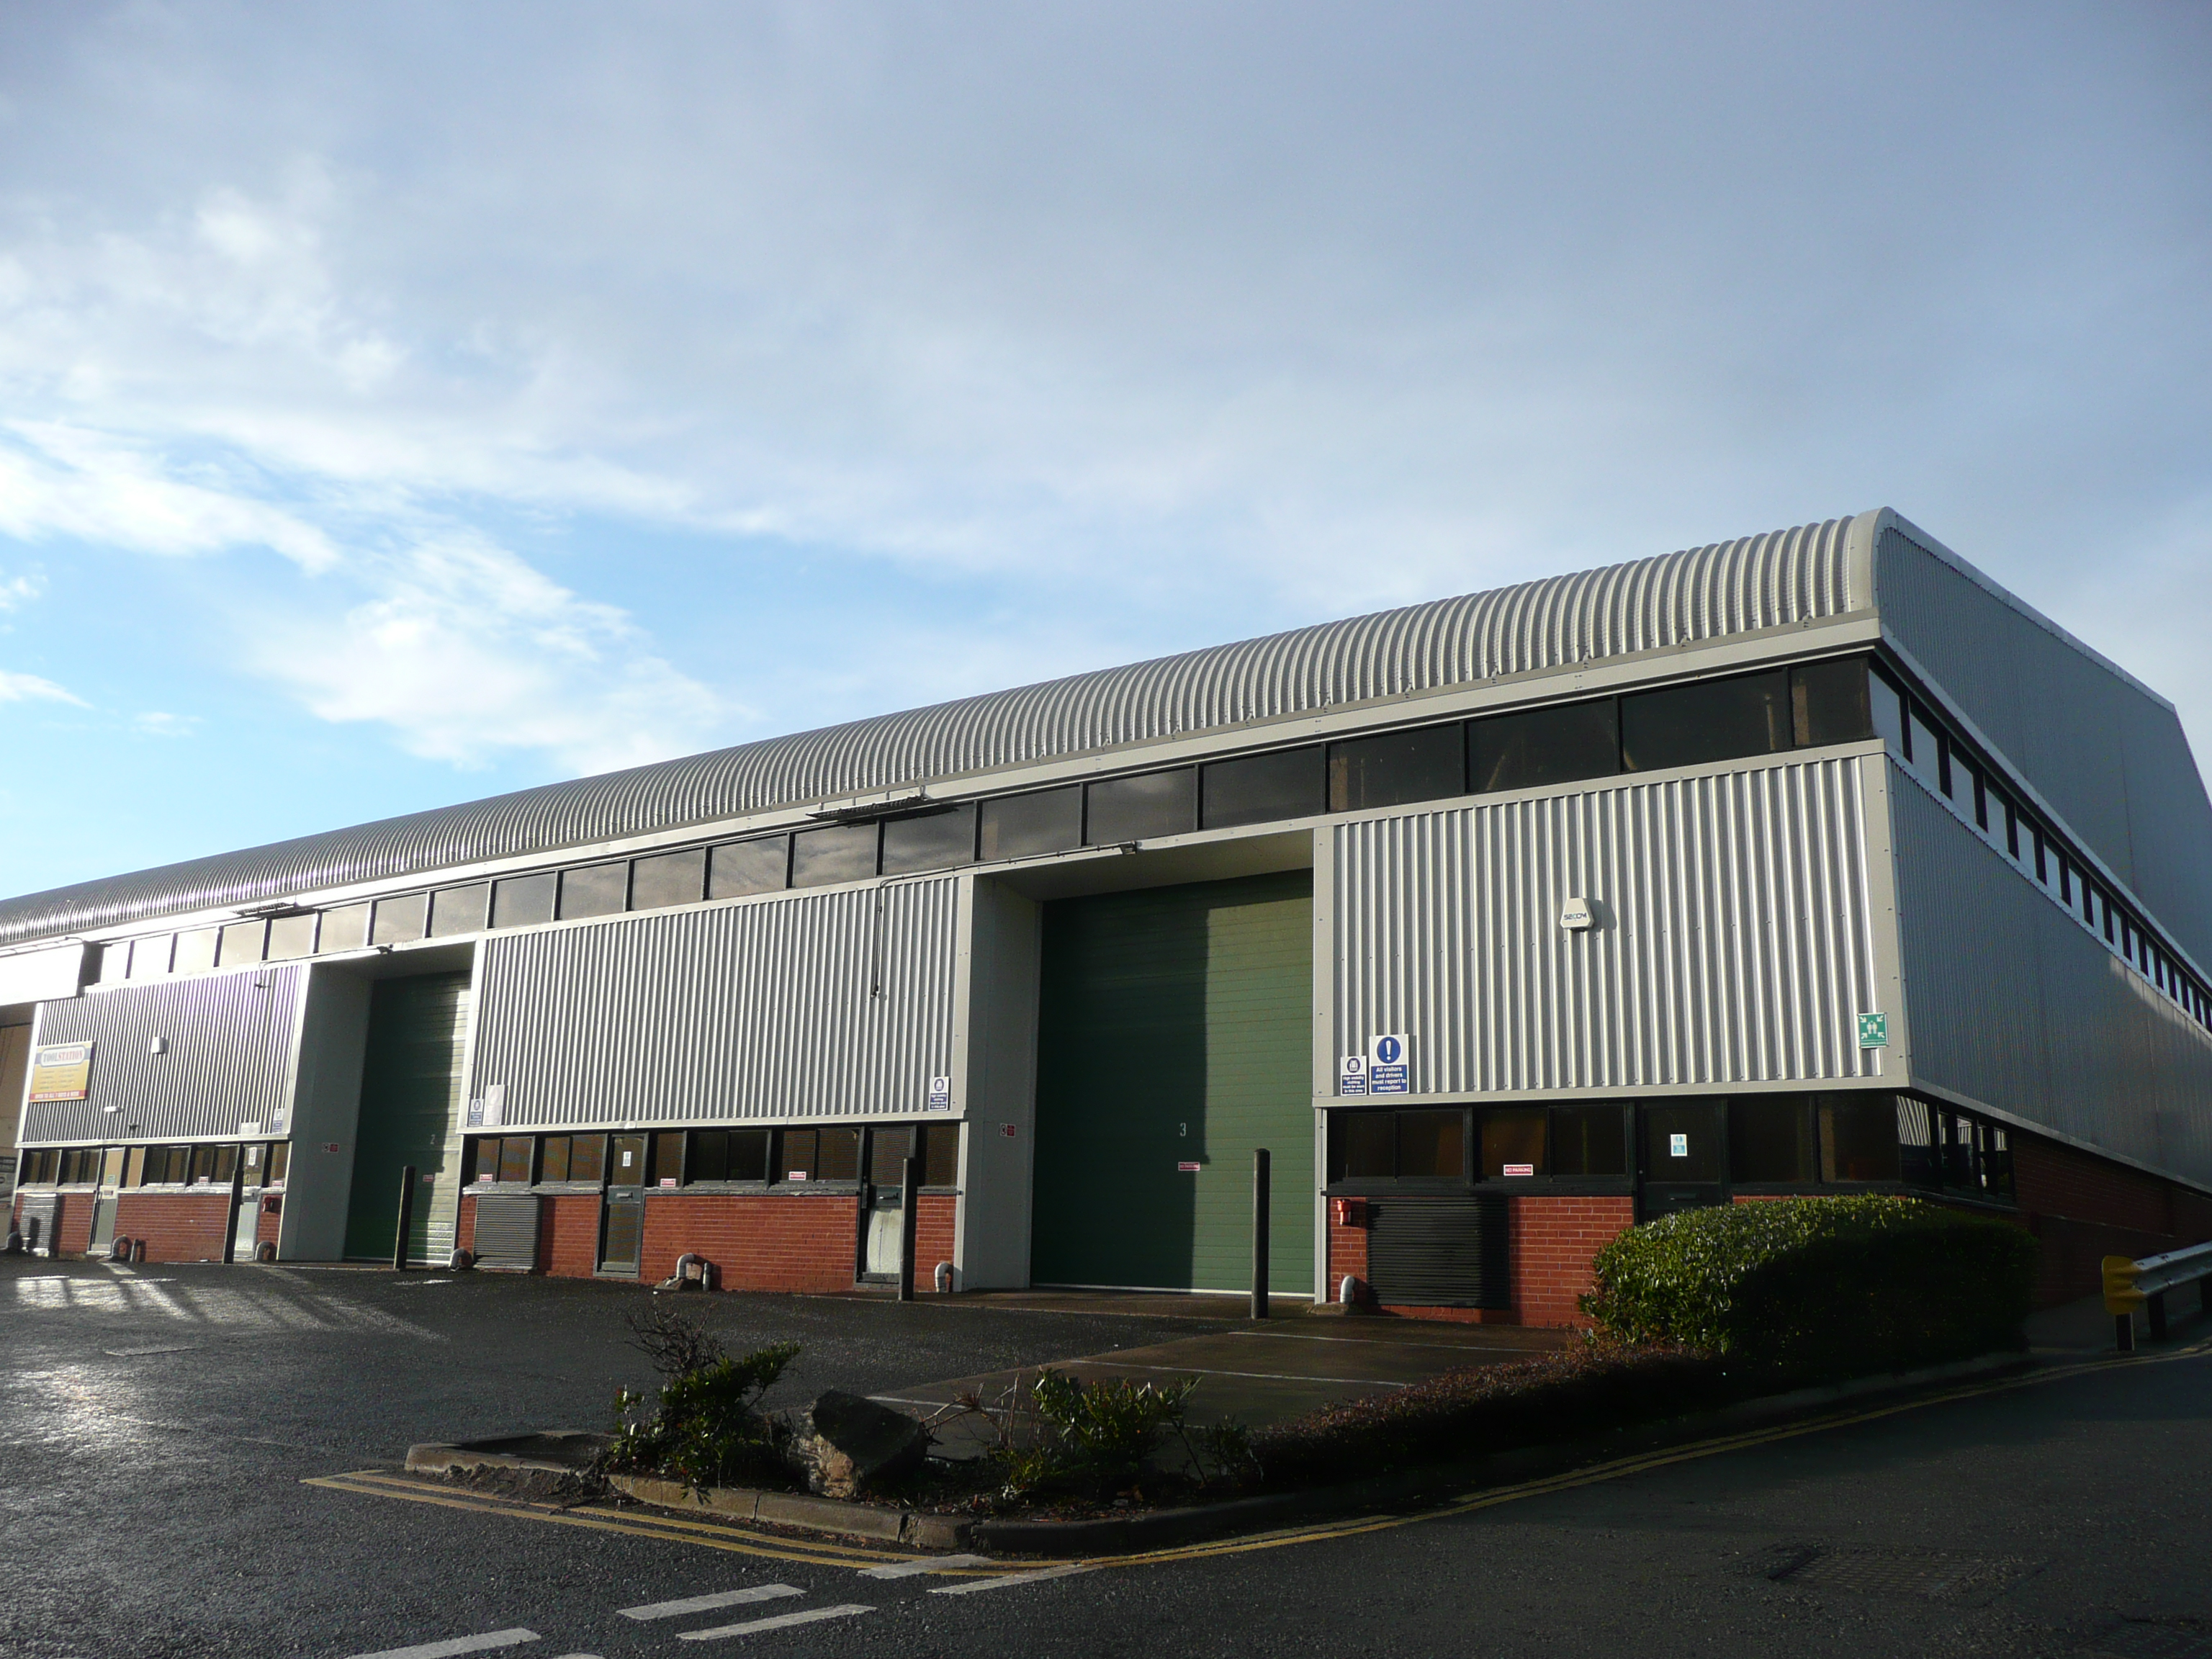 Vacant warehouses offer rare chance for firms to move onto popular Bath industrial estate